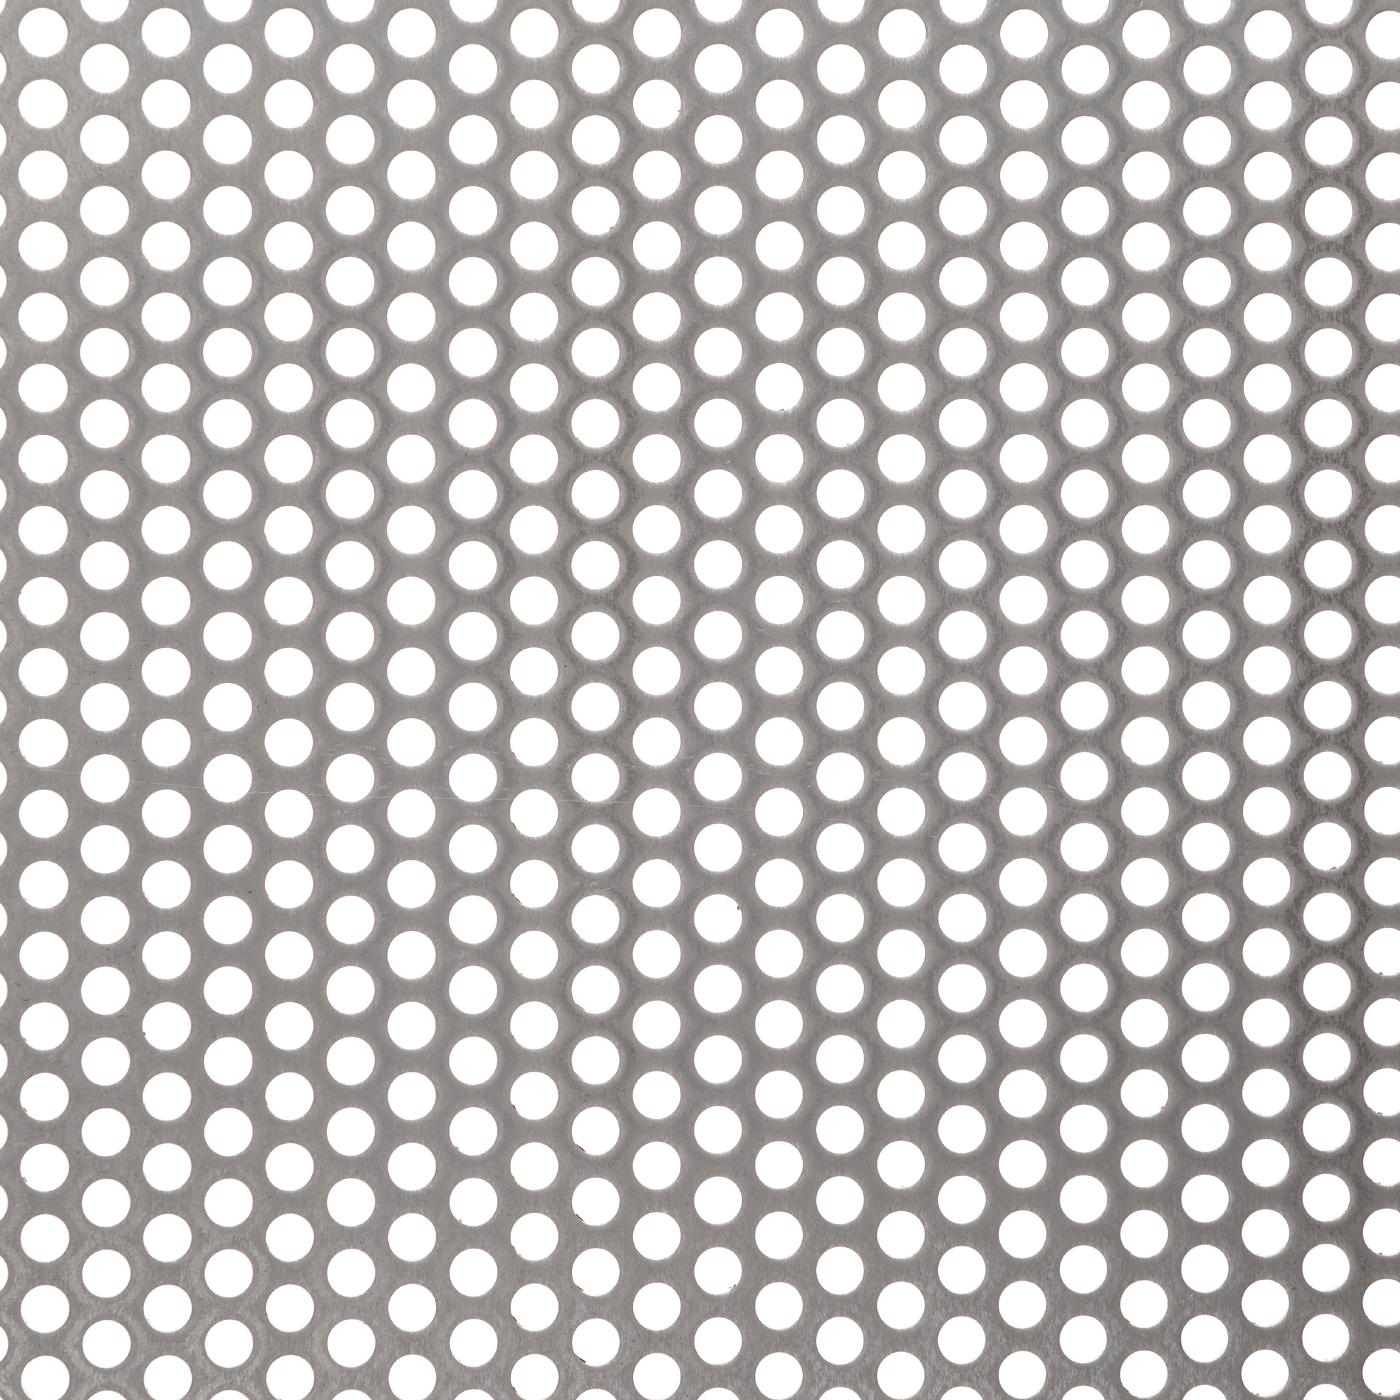 R06440 Perforated Metal Sheet 6 4mm Round 40 Open Area